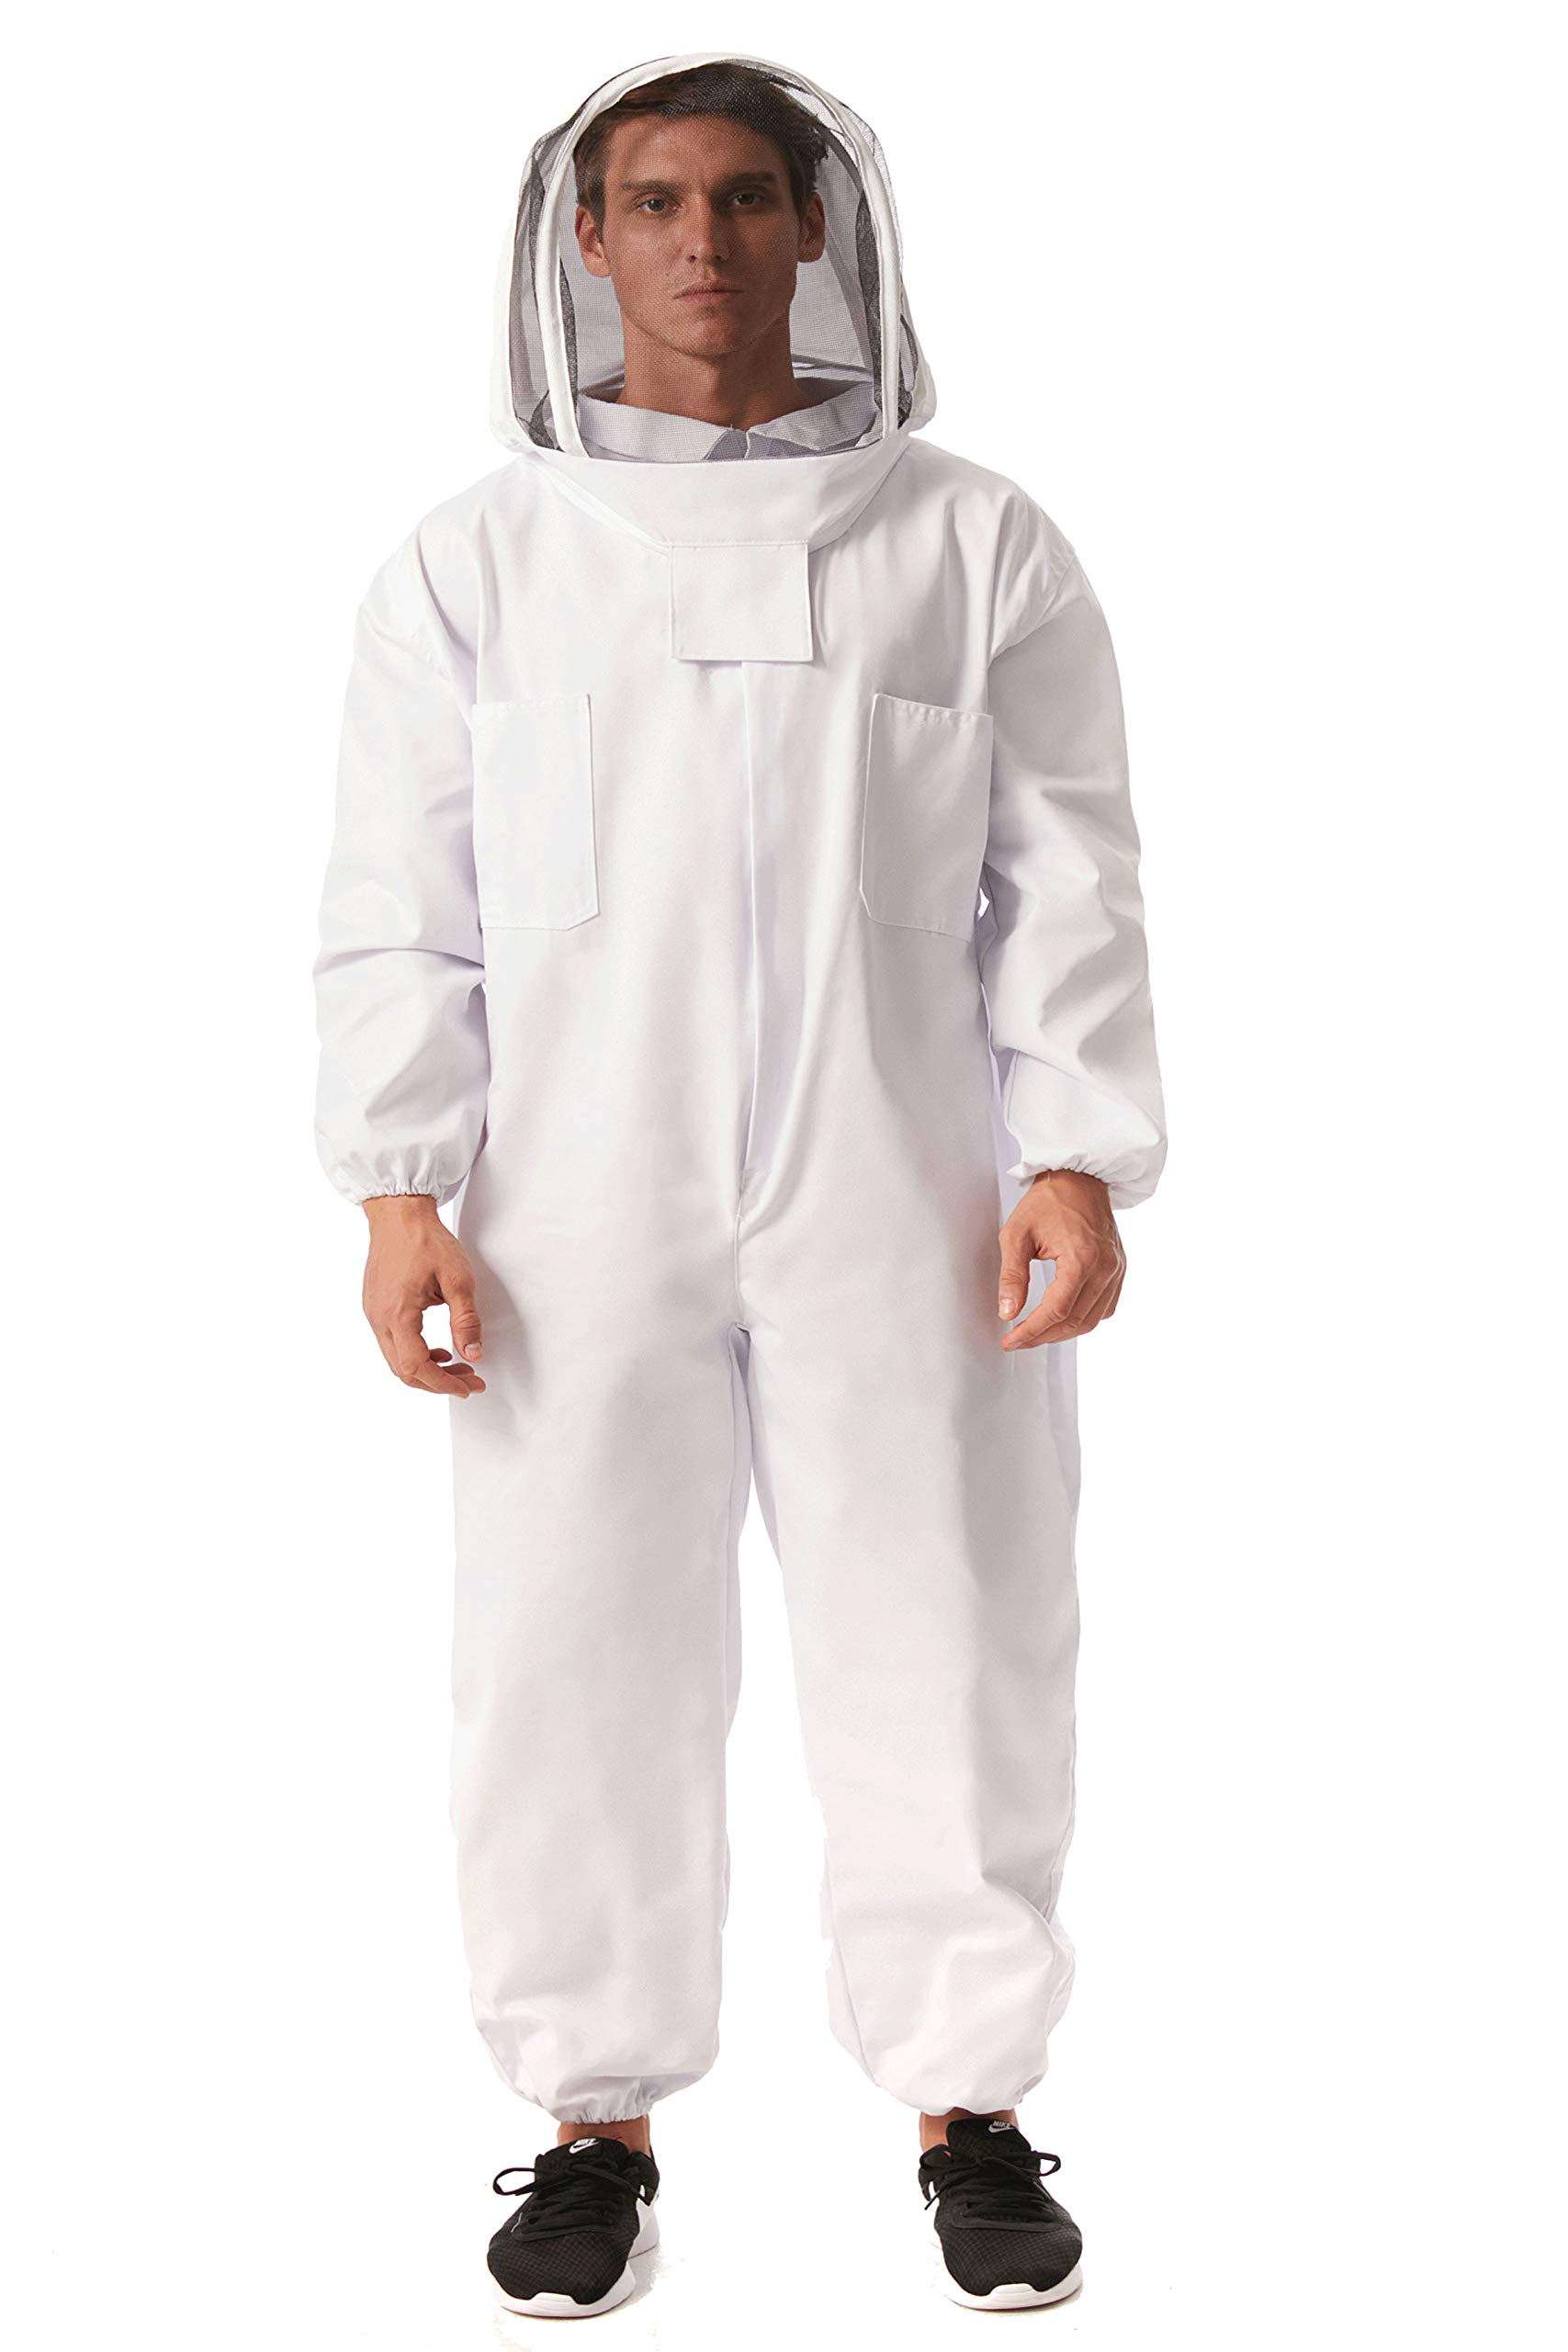 Professional Bee Keeping Suit Cotton Full Body Beekeeping Suit Jacket with Veil Hood (XXL) by Unilove